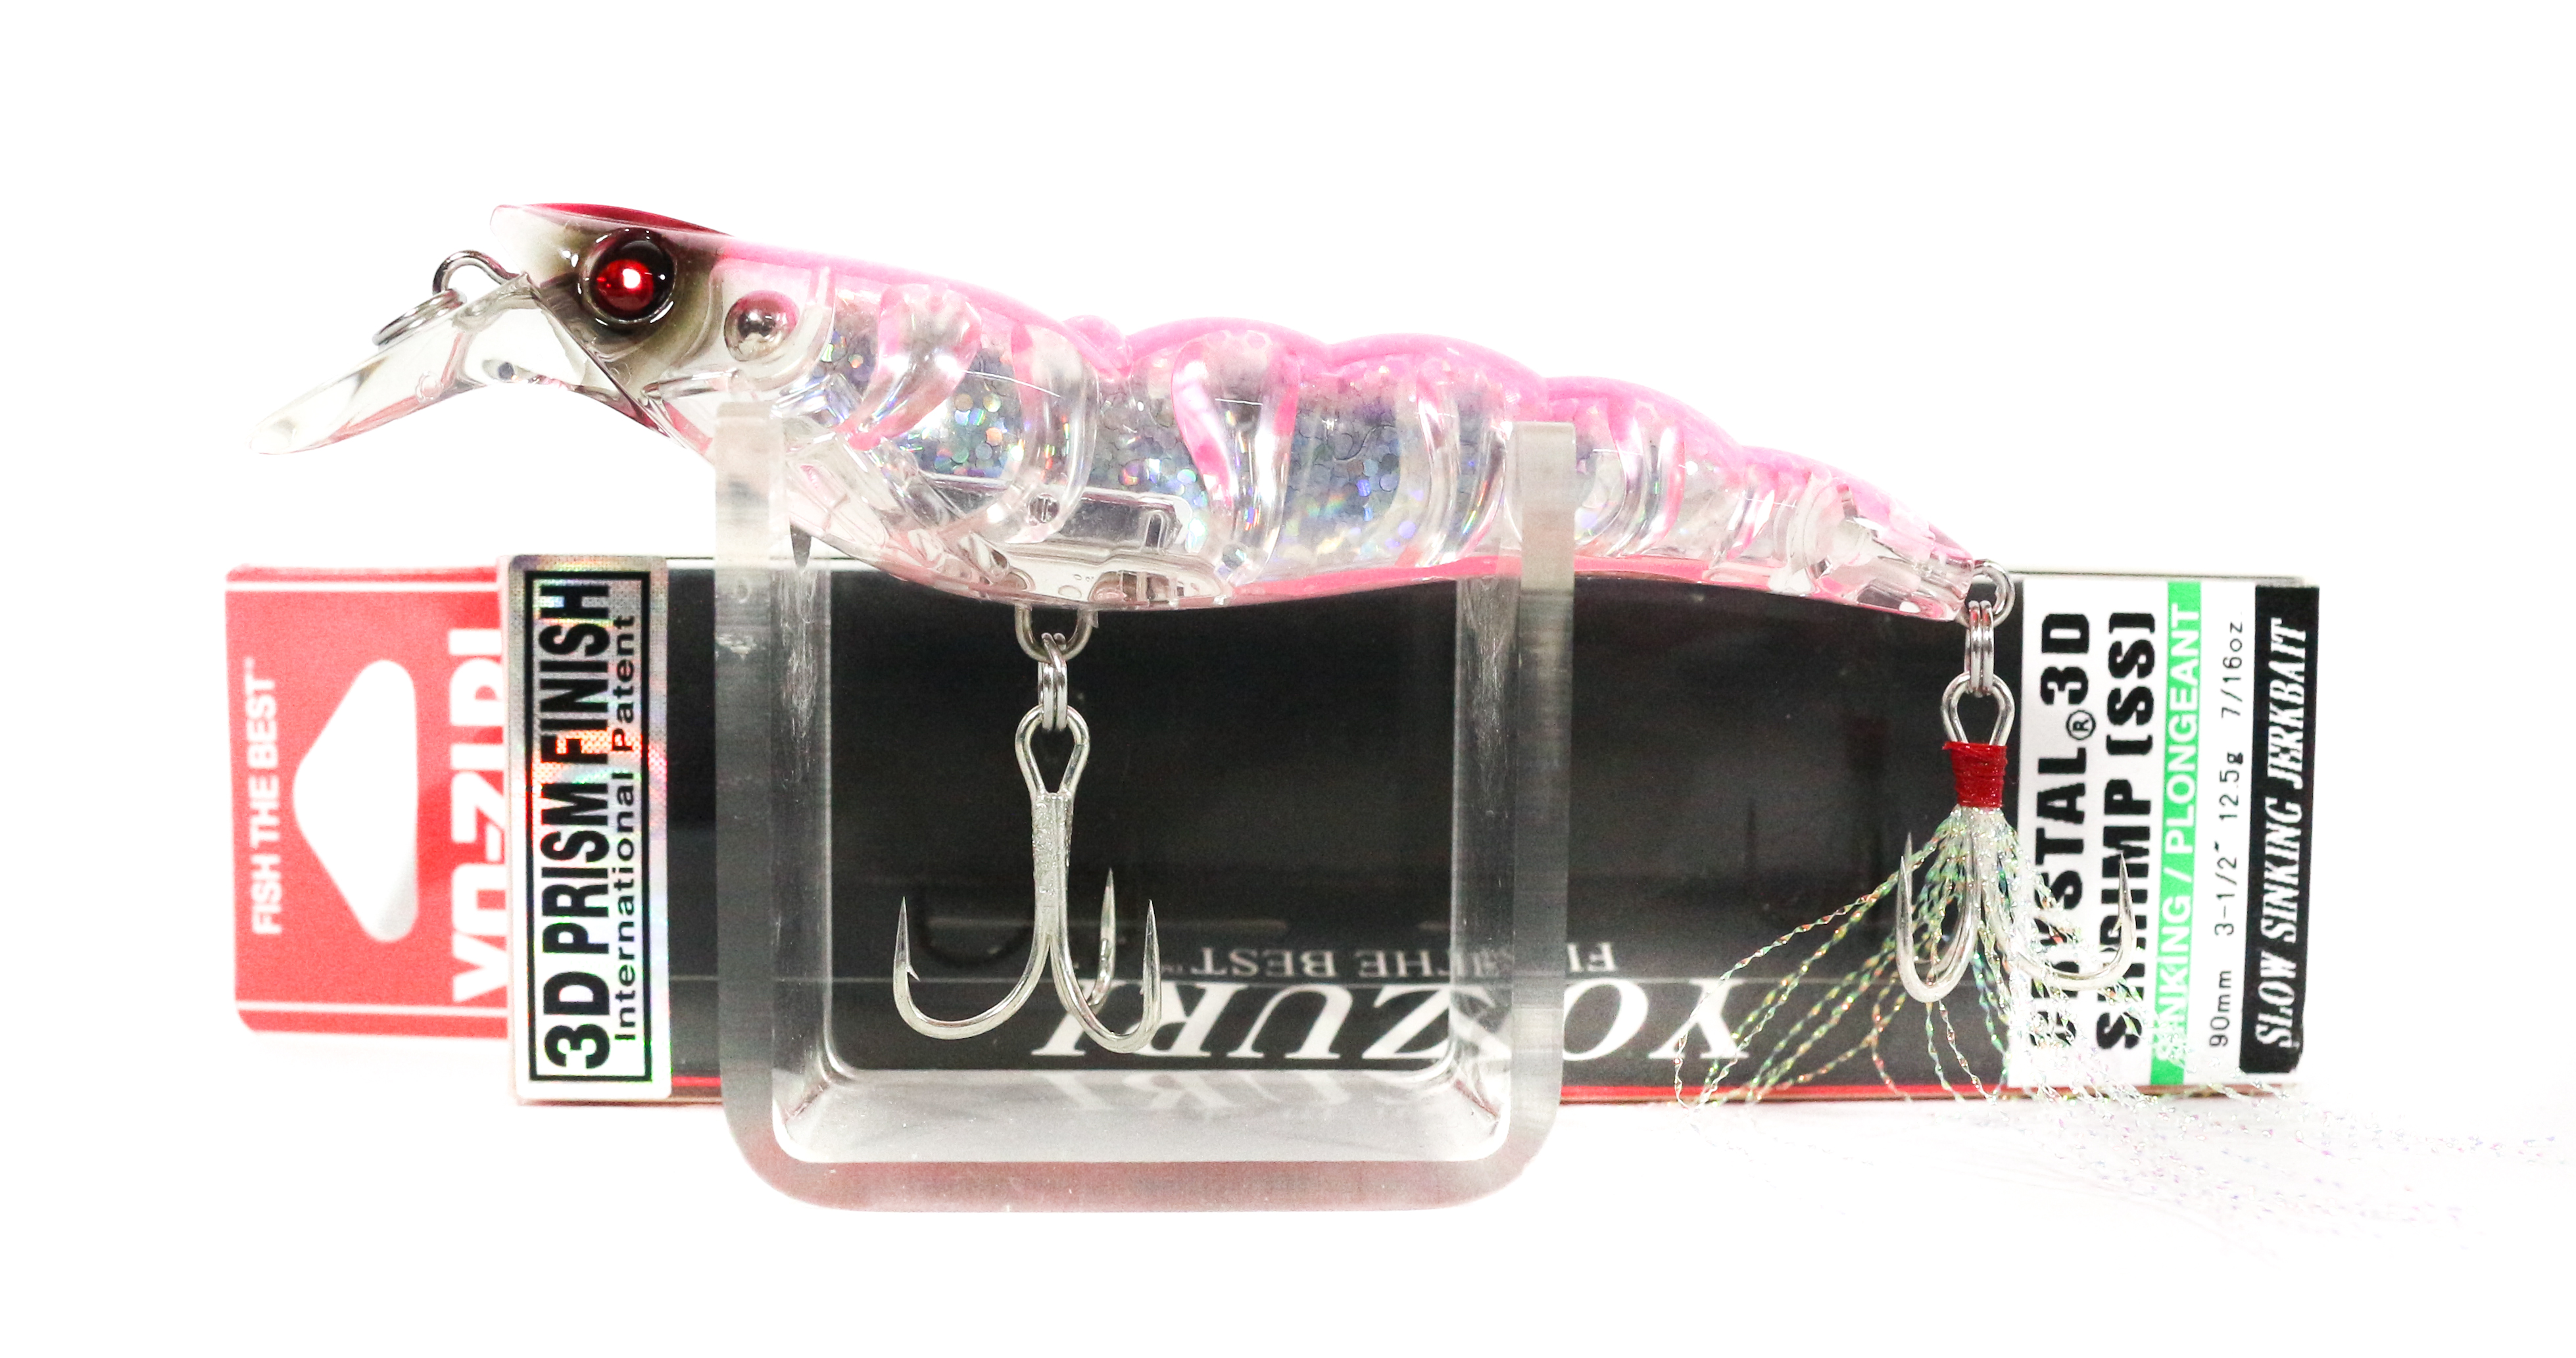 Yo Zuri 3D Crystal Shrimp 90 mm Sinking Lure R1162-HP (2585)